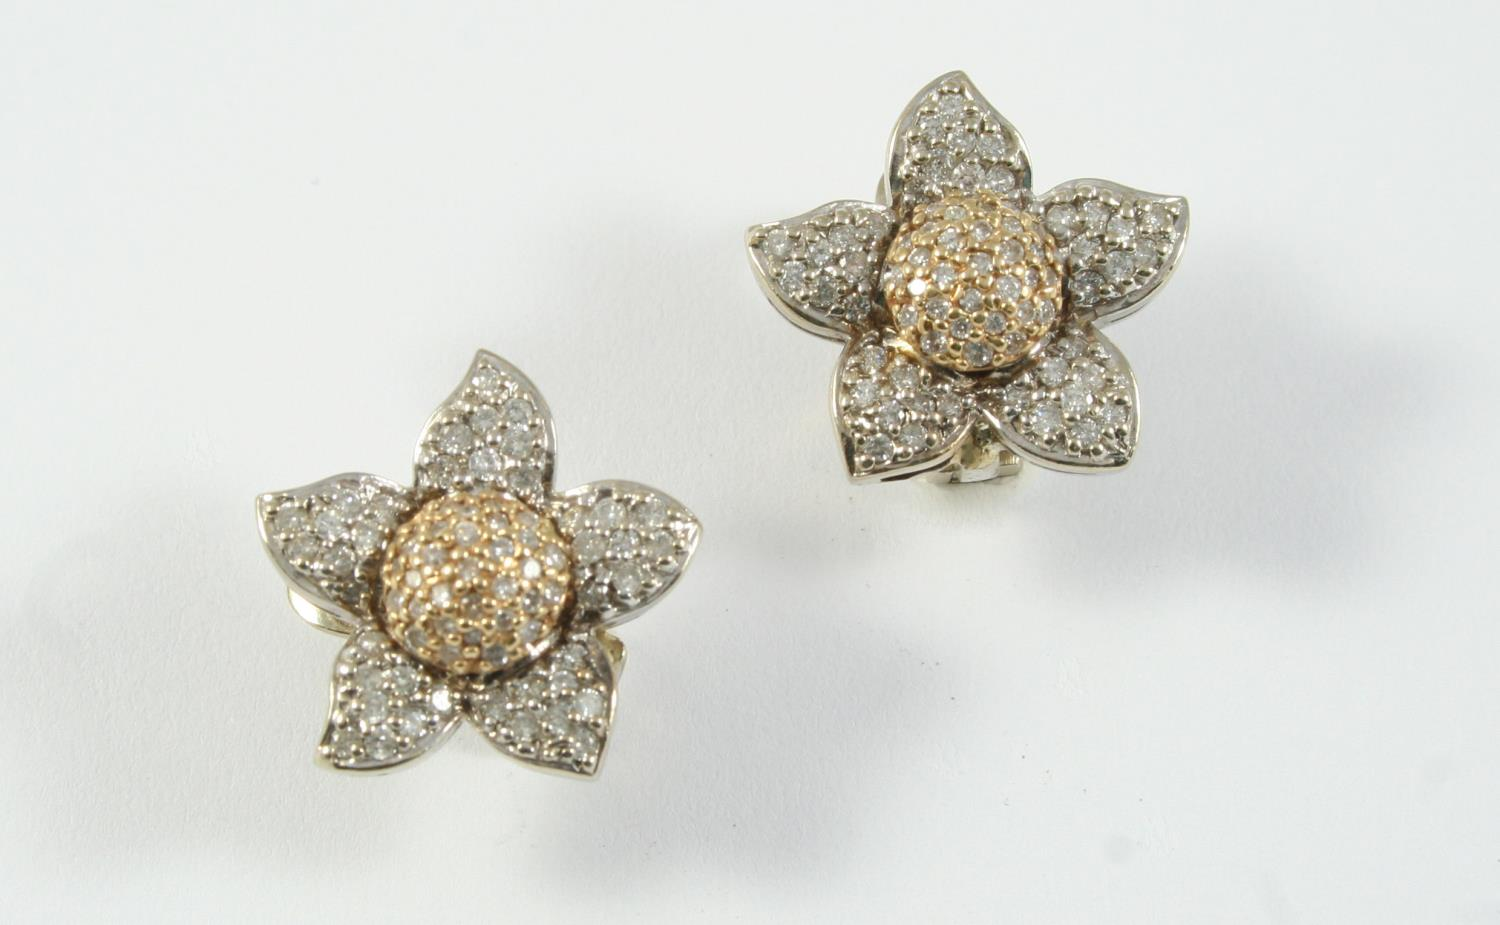 A PAIR OF DIAMOND SET EARRINGS of flowerhead form, each set with circular-cut diamonds, in gold, 2.